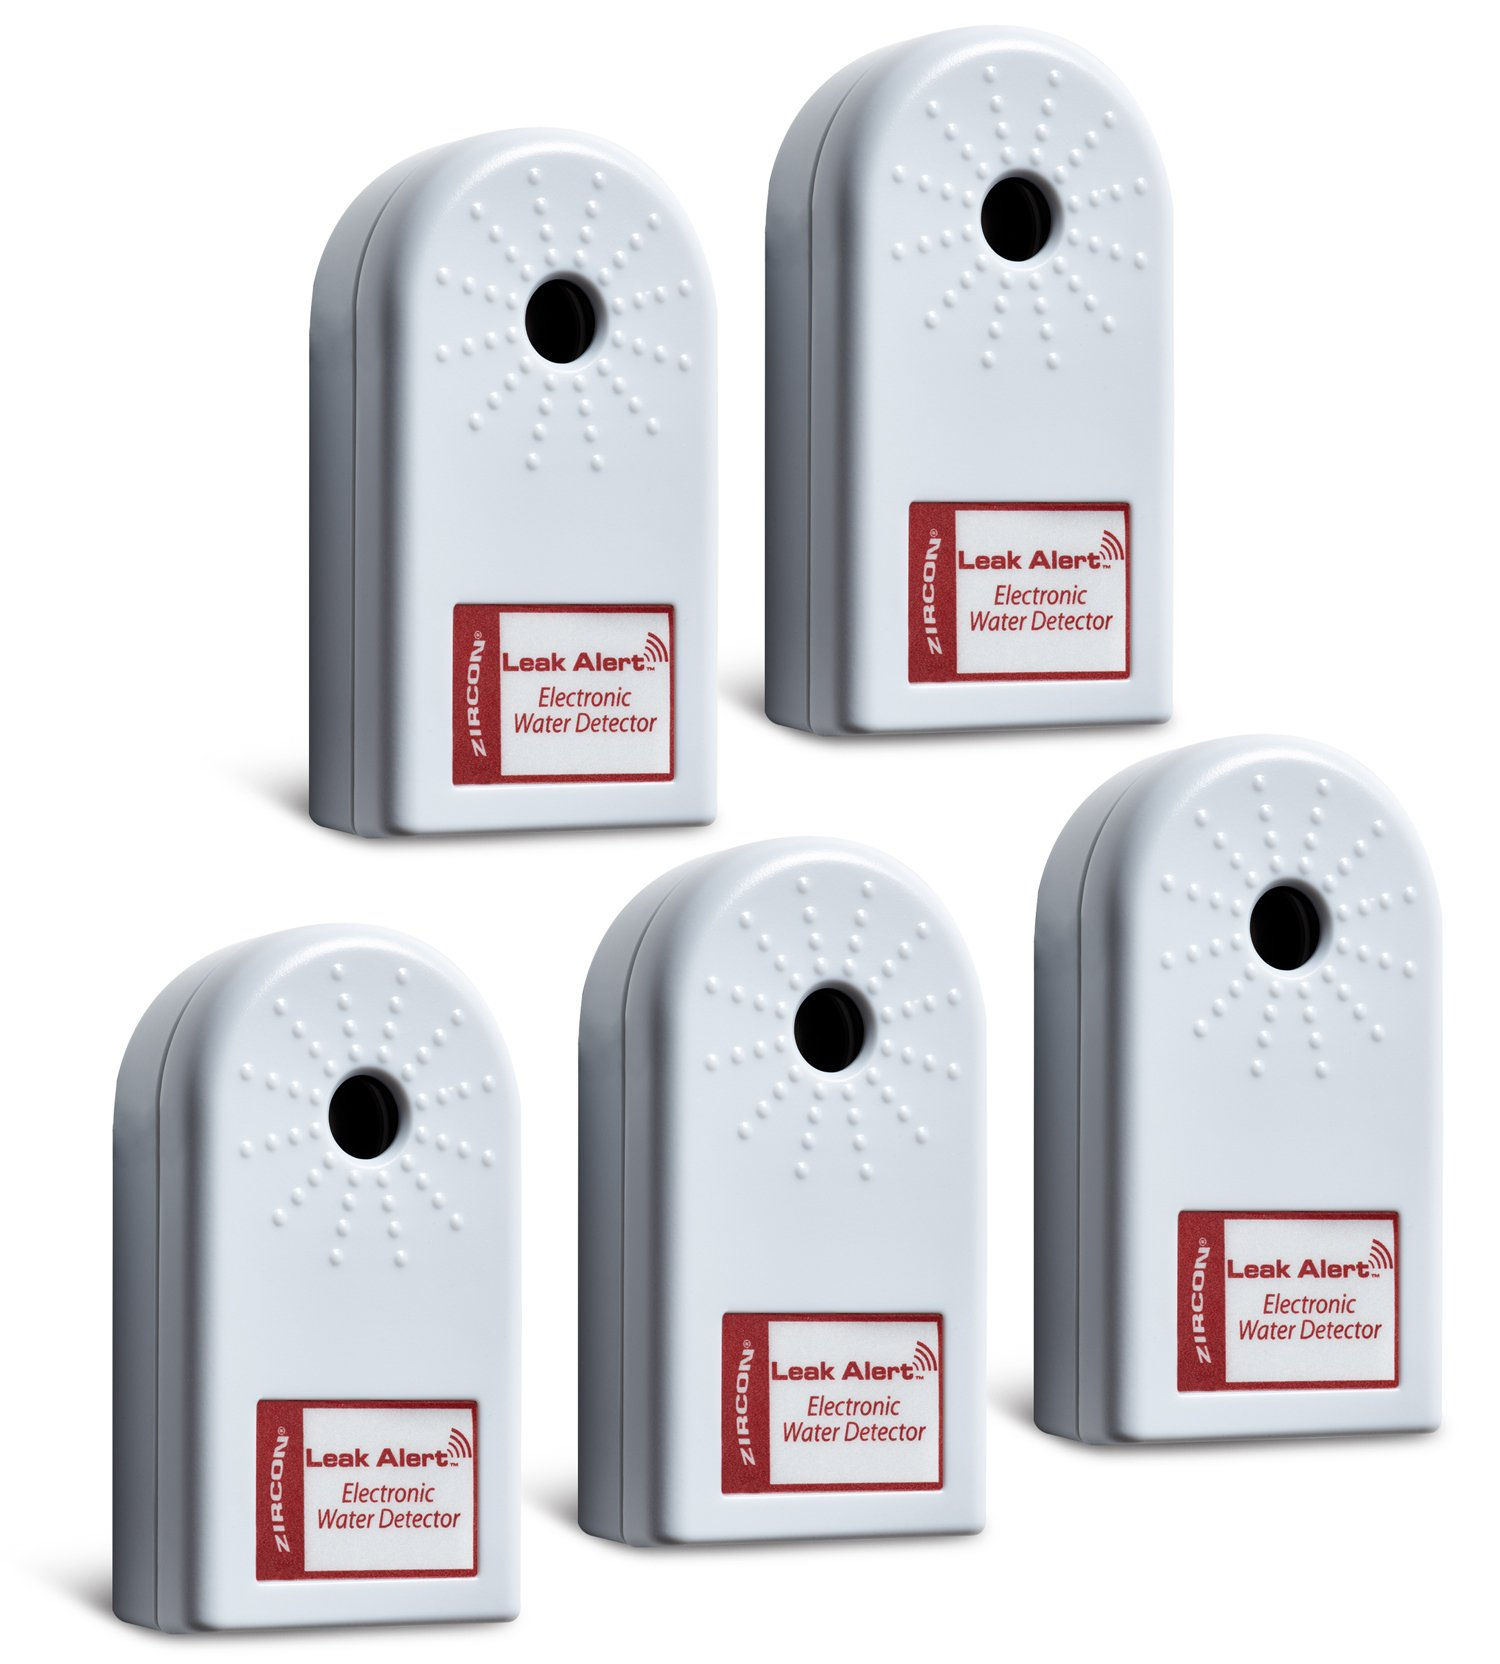 Zircon Leak Alert Home Pack - Electronic Water Detector with Audio Alarm (5 Pack) - Batteries Included - FFP